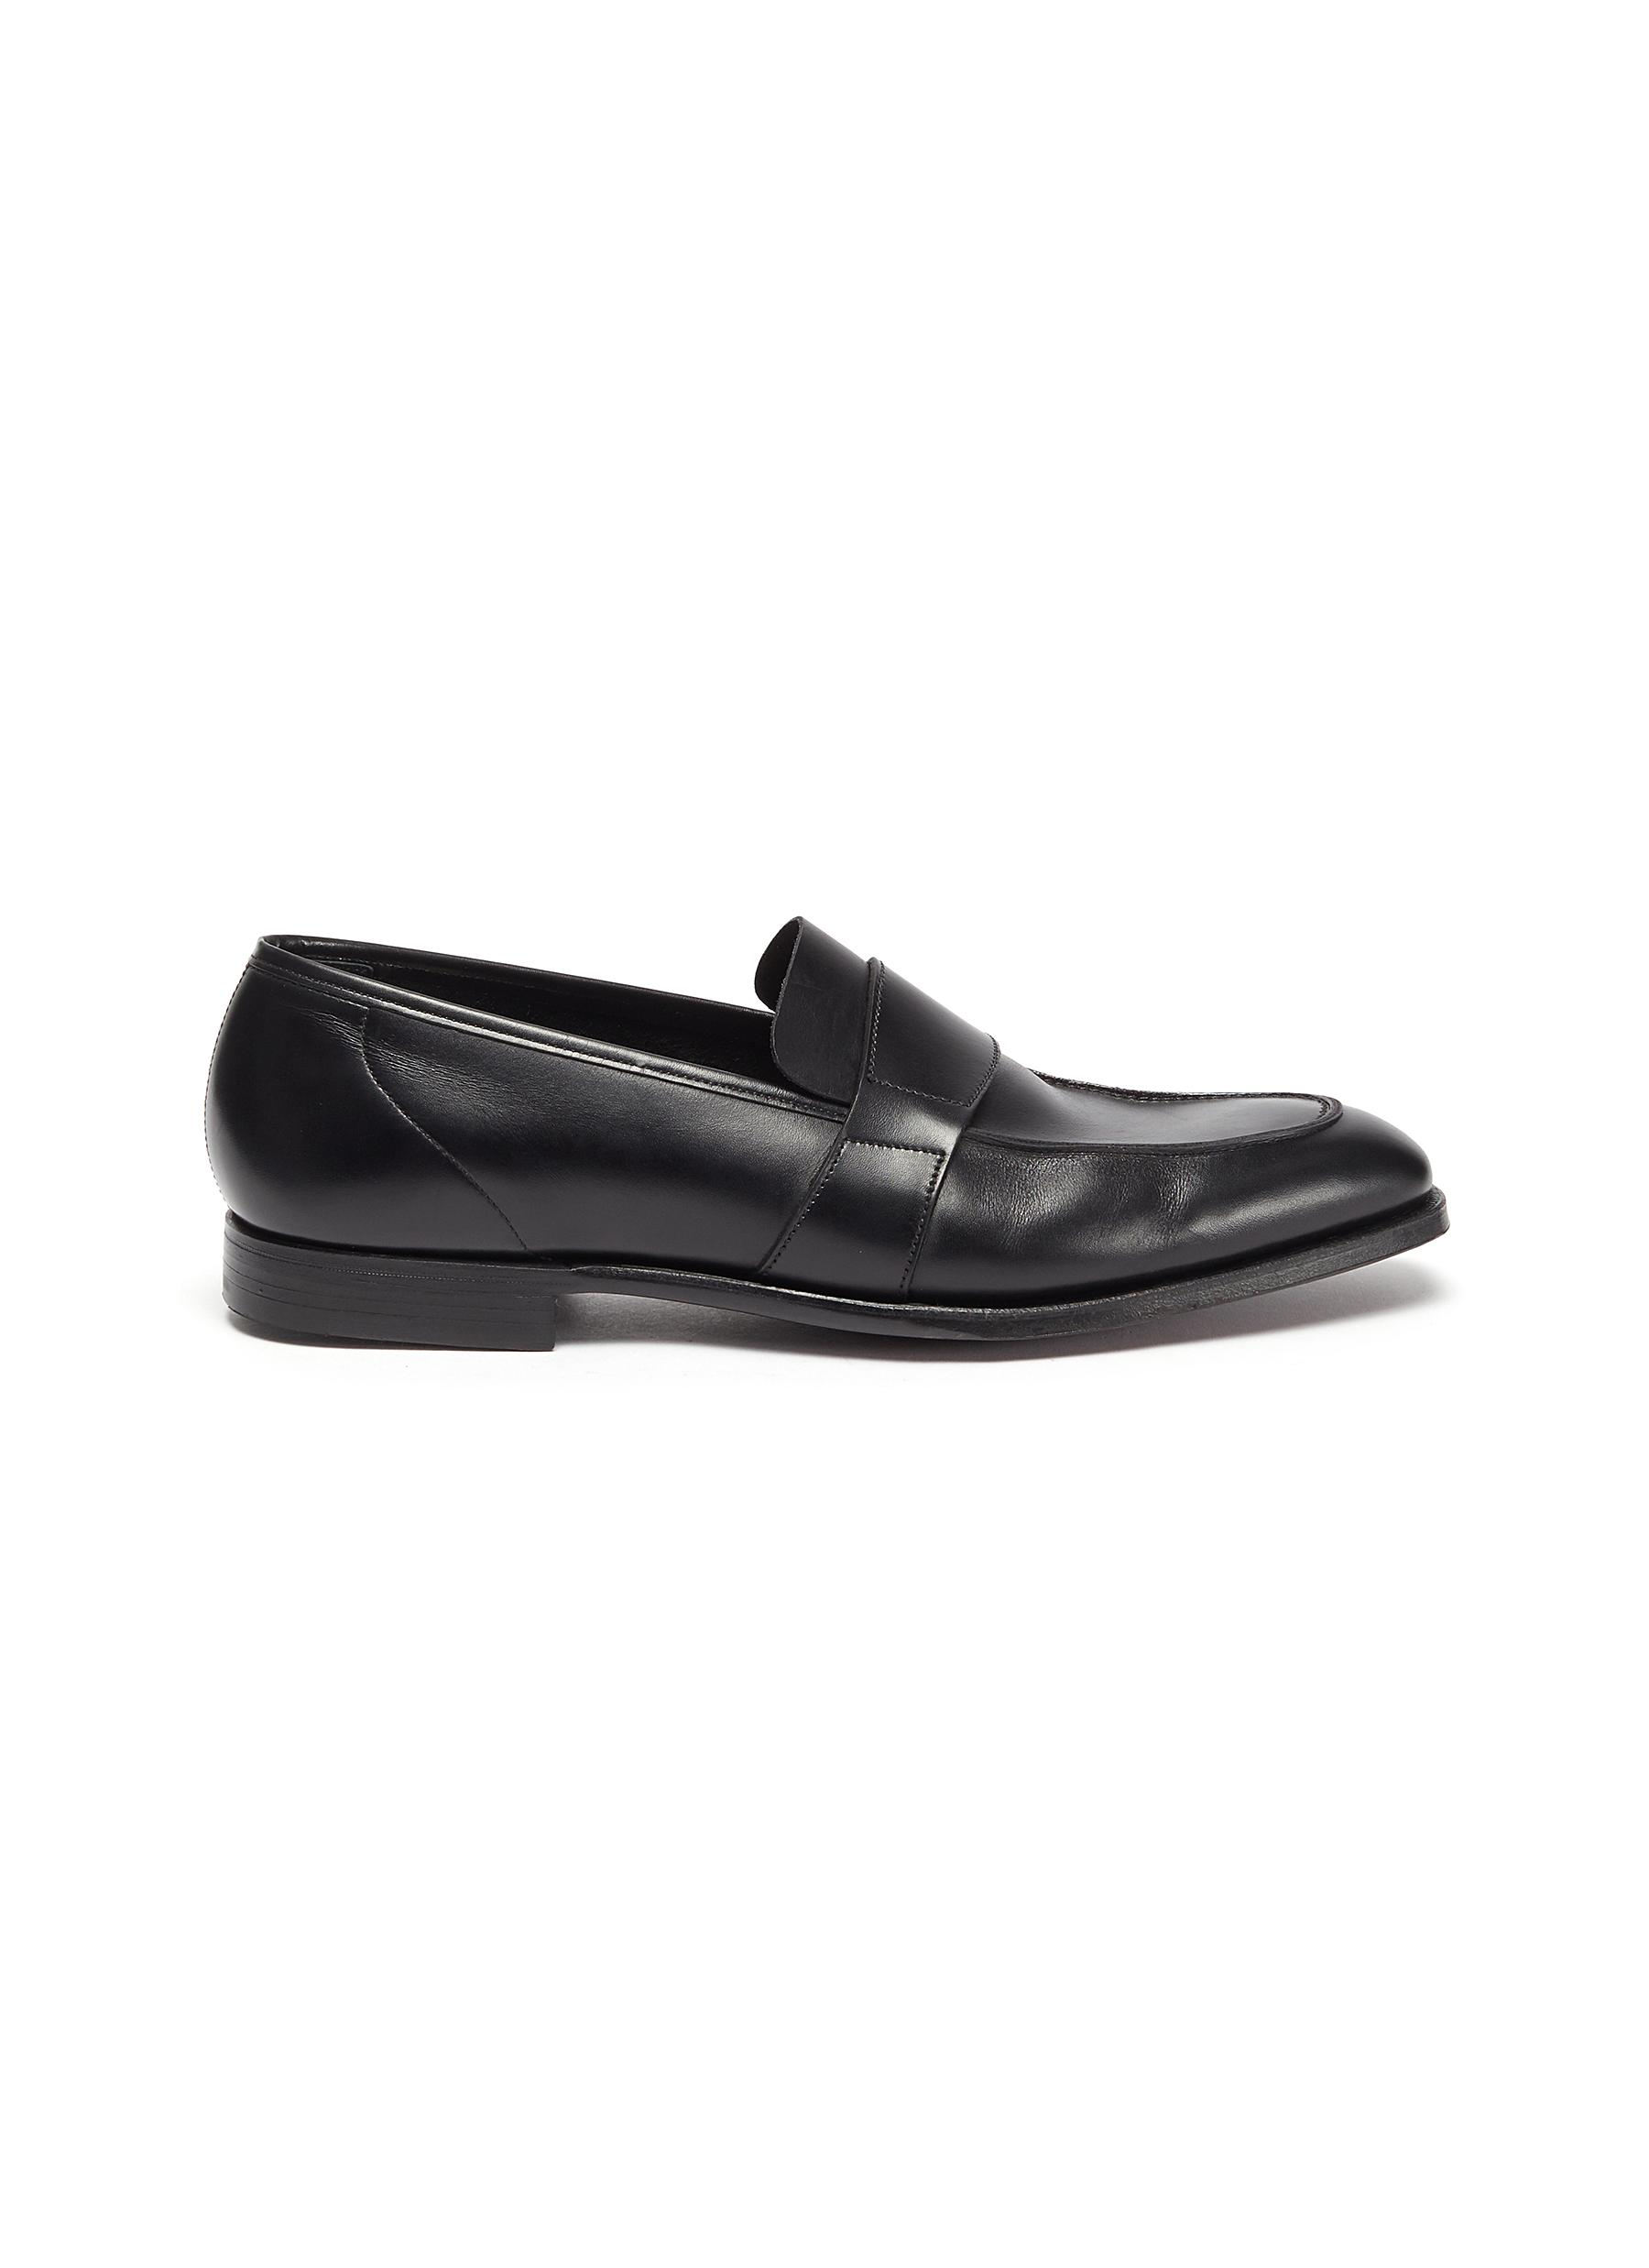 Owen' Wide Strap Leather Penny Loafers